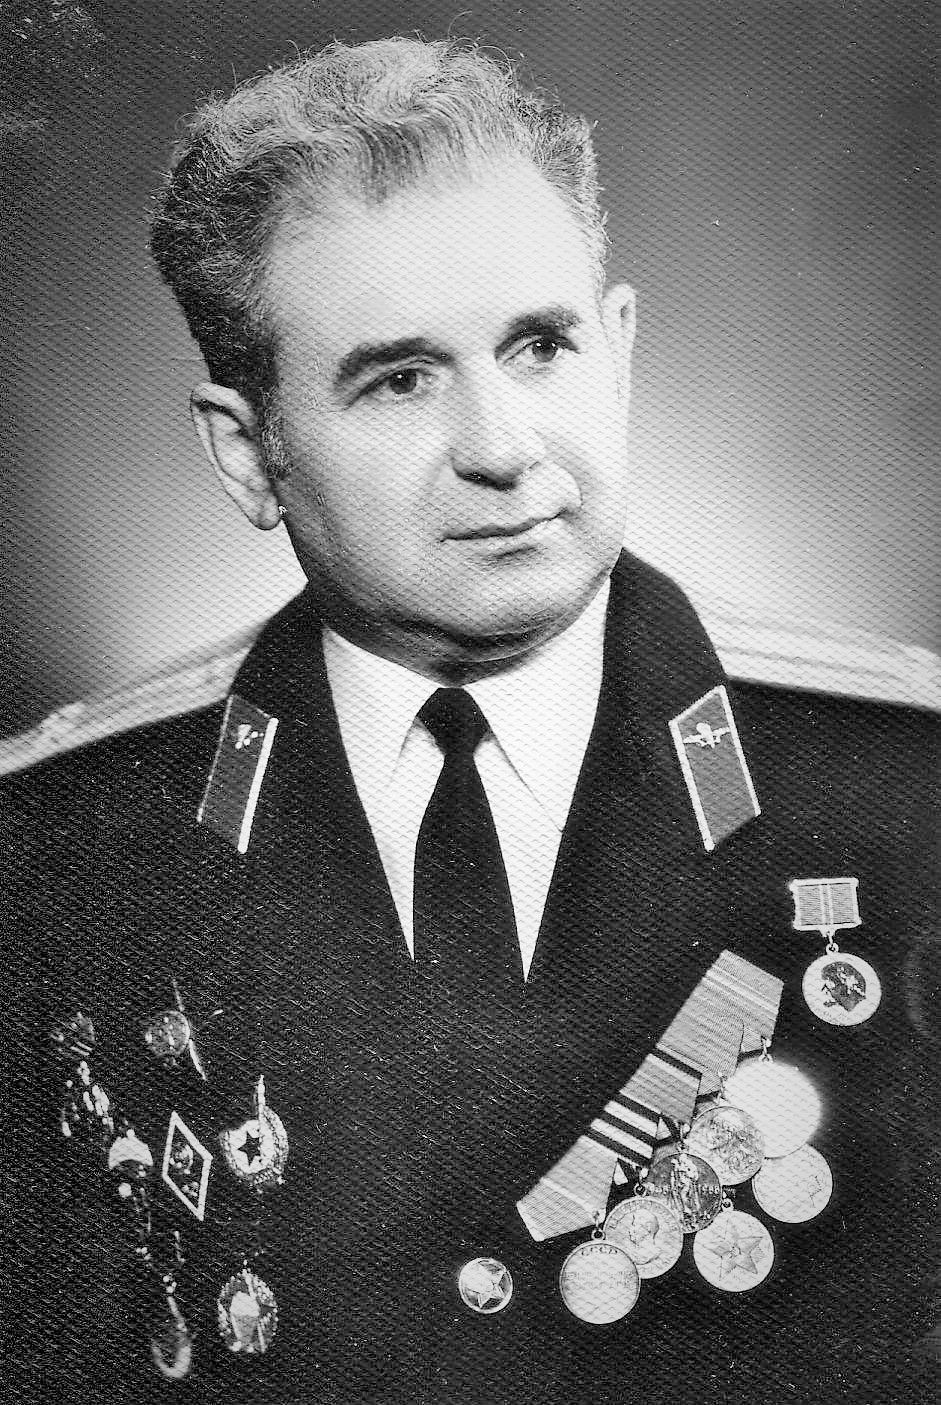 A VETERAN'S STORY: The colonel and communism